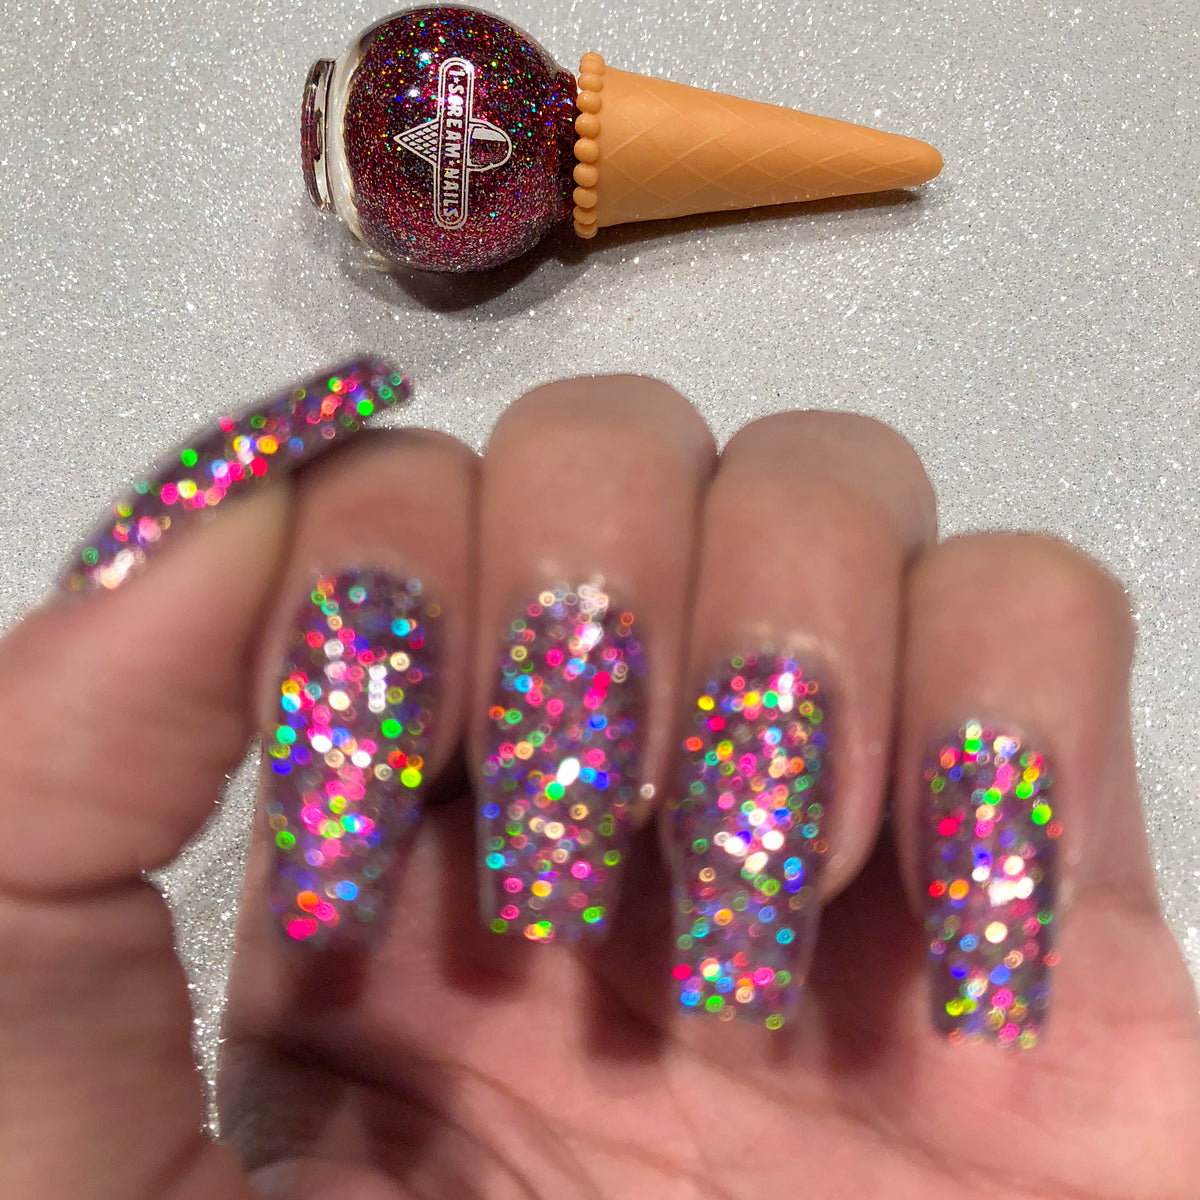 Bring the Bling Nail Polish